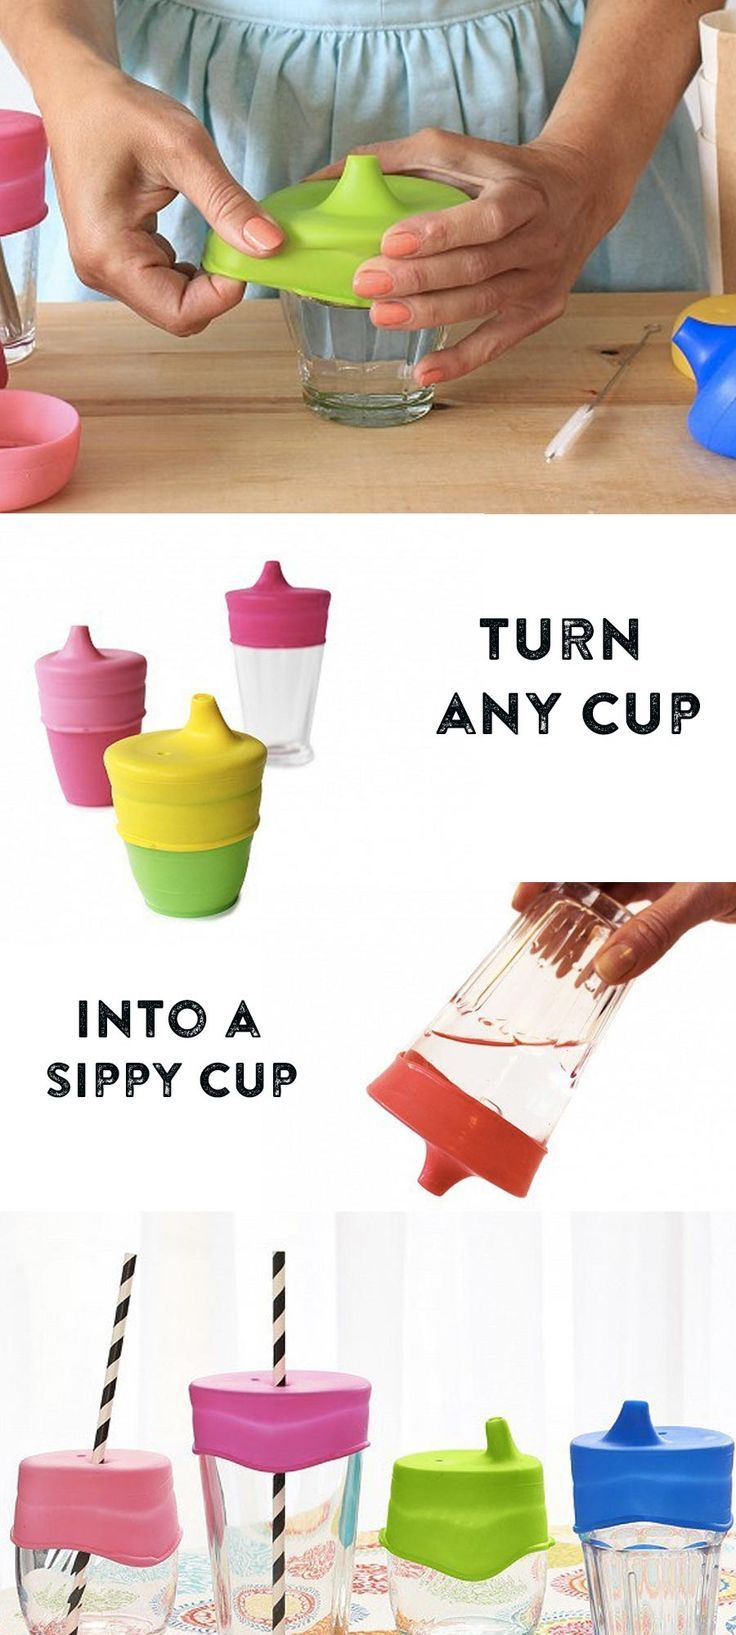 JC - Curious why these have such a low costumer rating? Great idea!! These sippy tops are great to lid for any glass or cup as it simply stretches over and grips the top of any glass. Every sippy top has an air suction on the top and it's simply great to turn any glass or cup into a sippy cup. Price $9.95